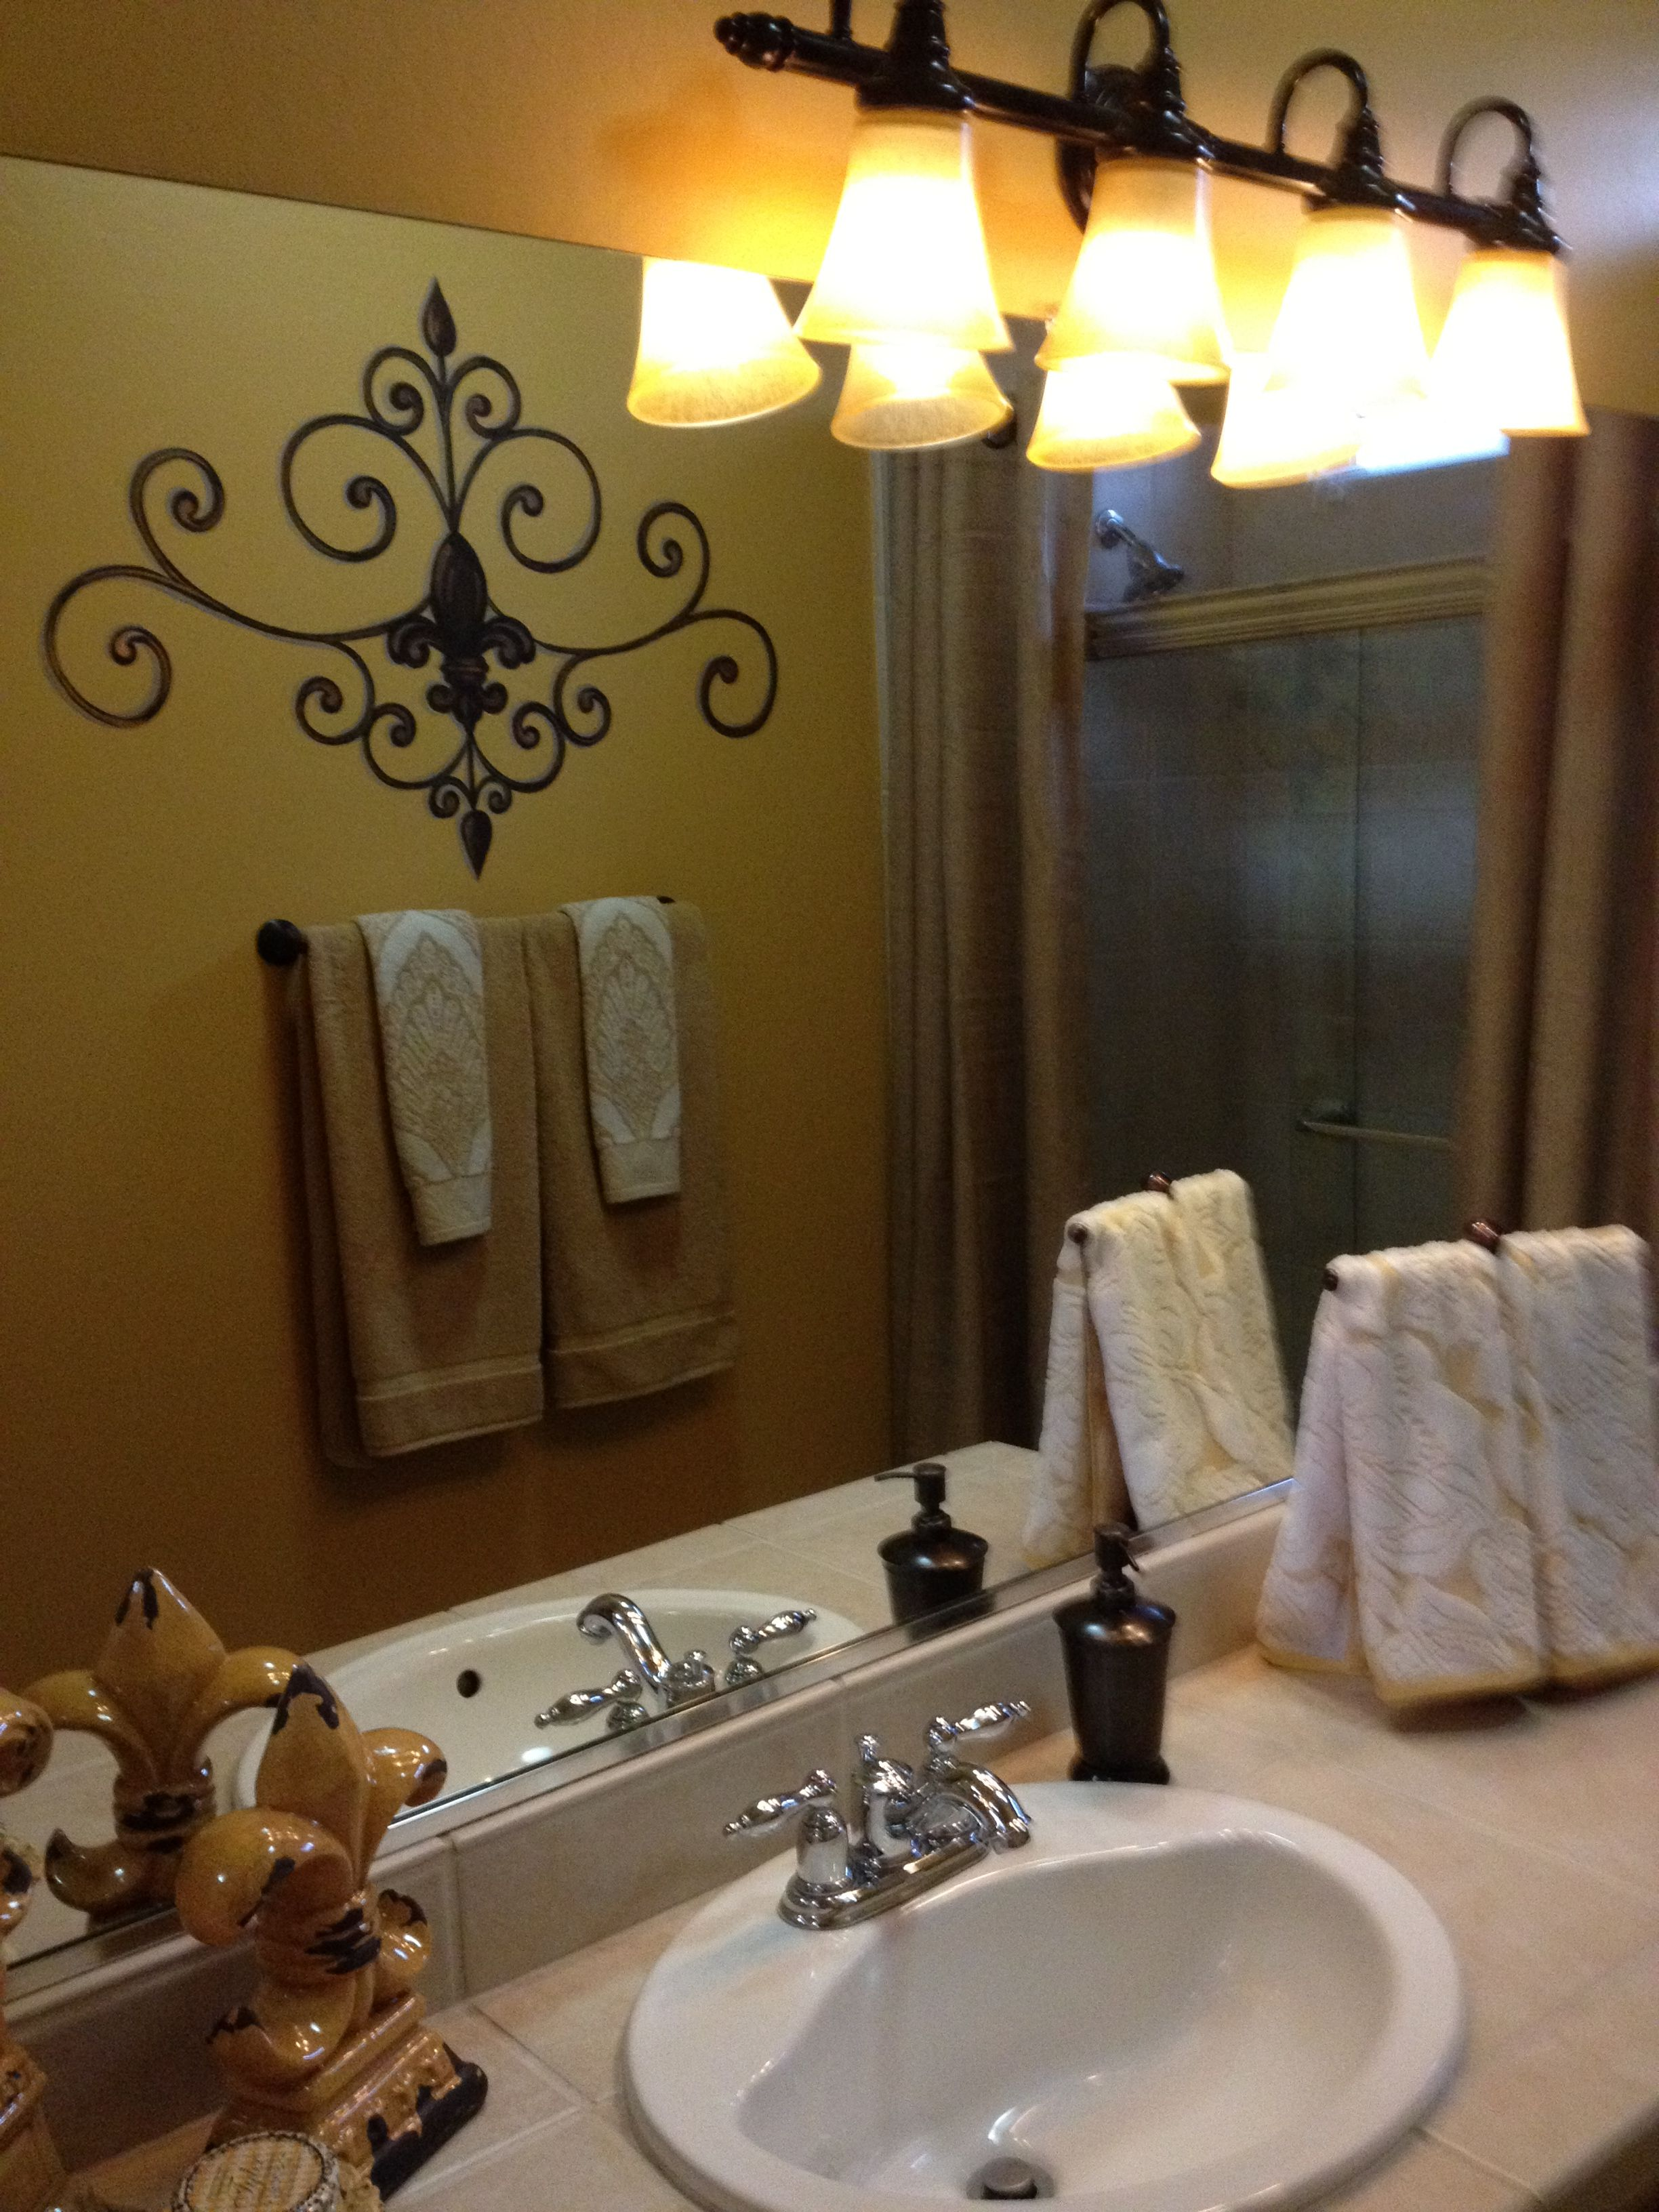 Fleur De Lis Bathroom Love Tuscan Decorating Bathroom Decor